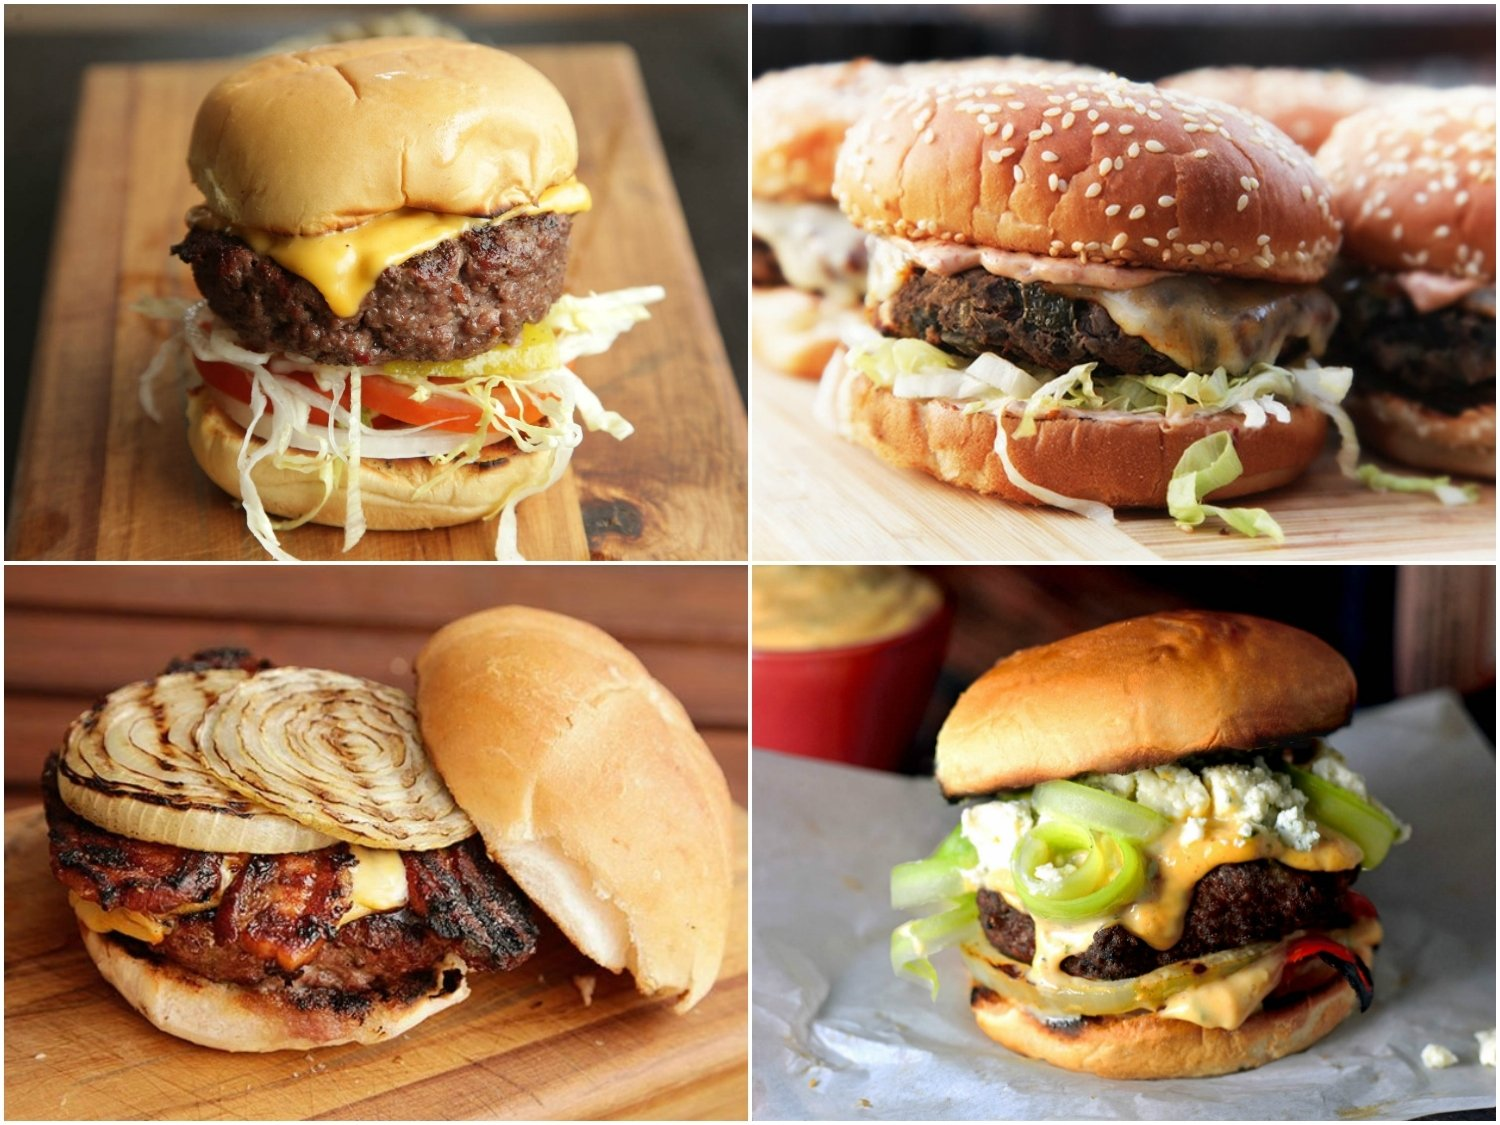 15 grilled burger recipes for memorial day | serious eats